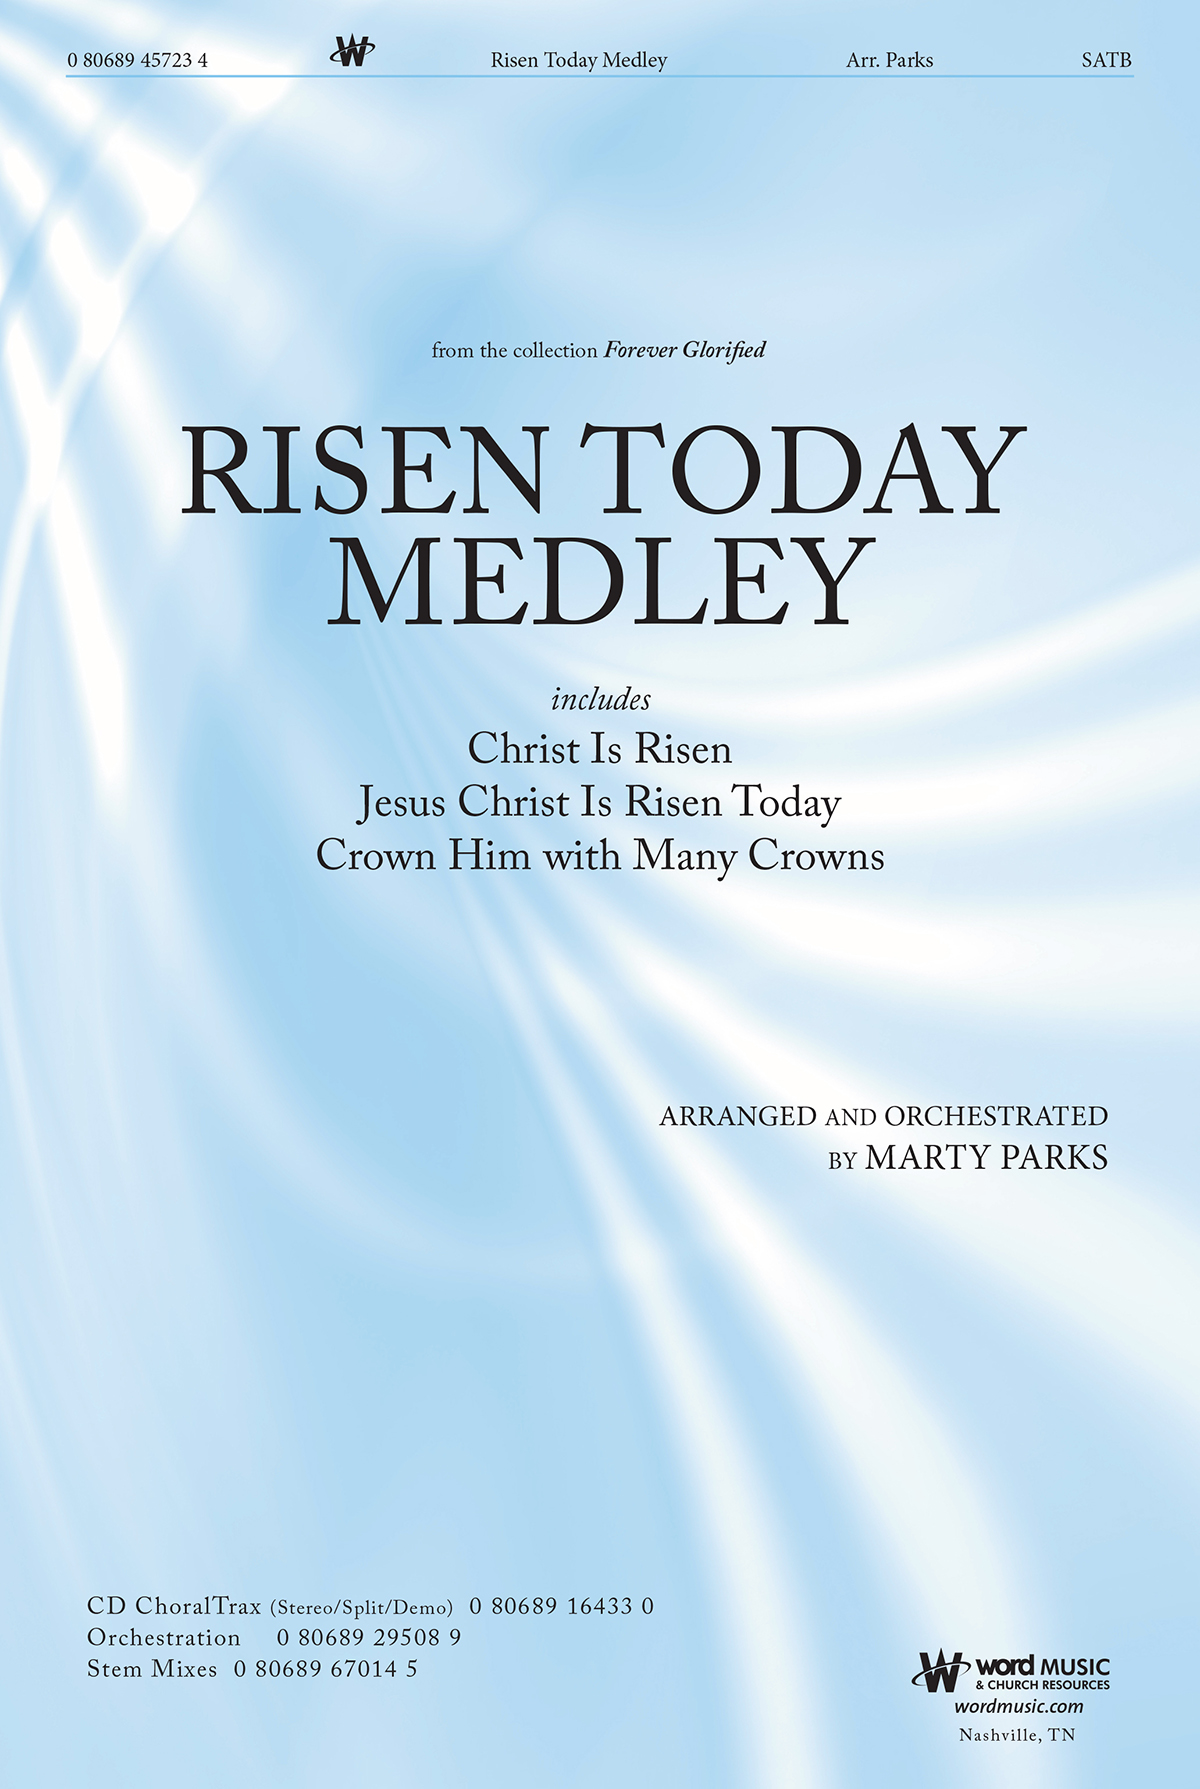 Risen Today Medley